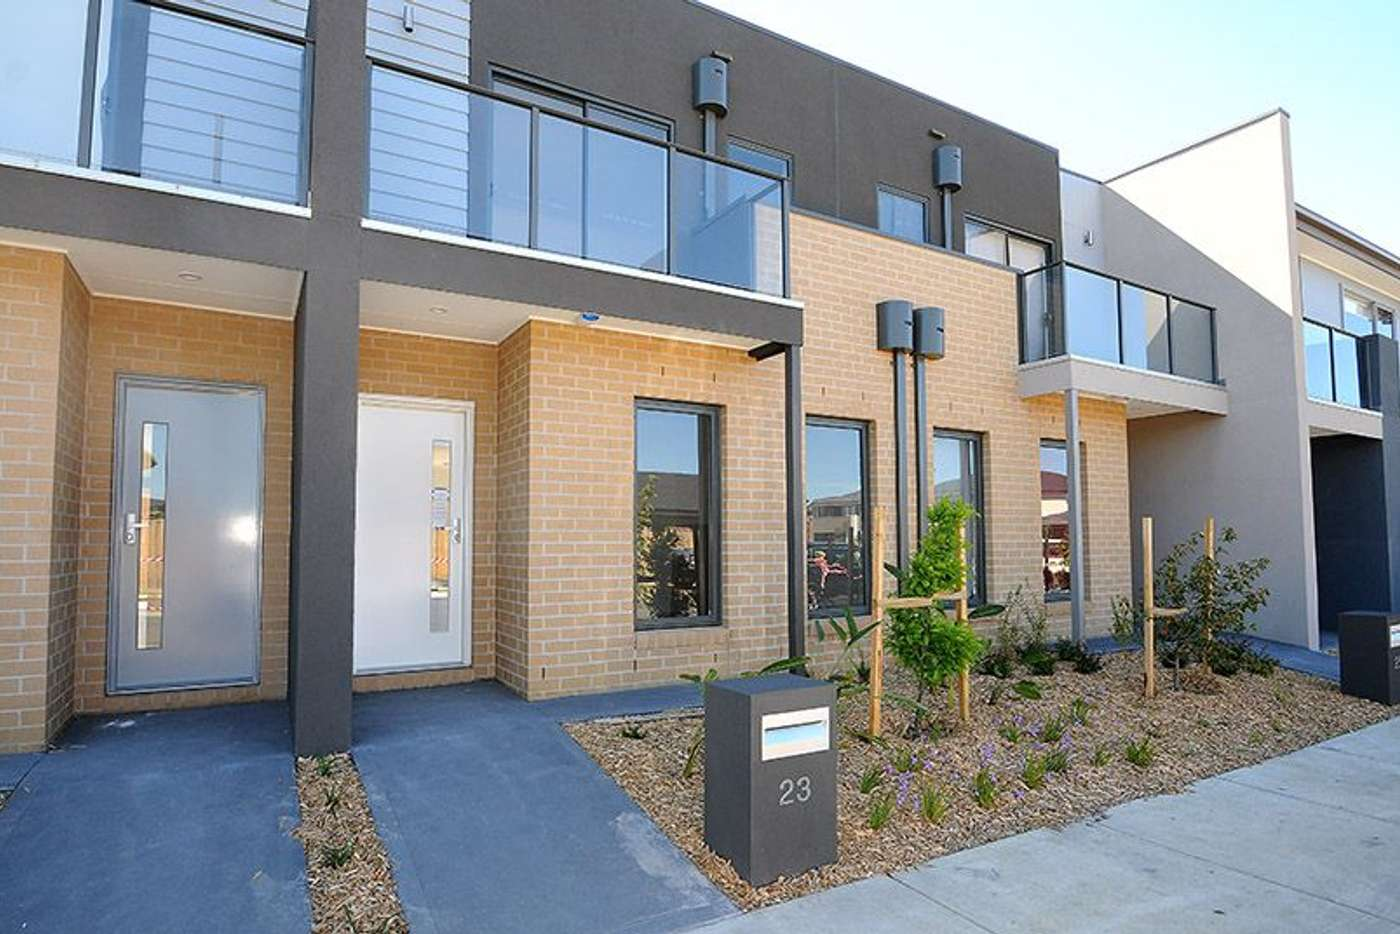 Main view of Homely townhouse listing, 23 Palmyra Street, Keysborough VIC 3173